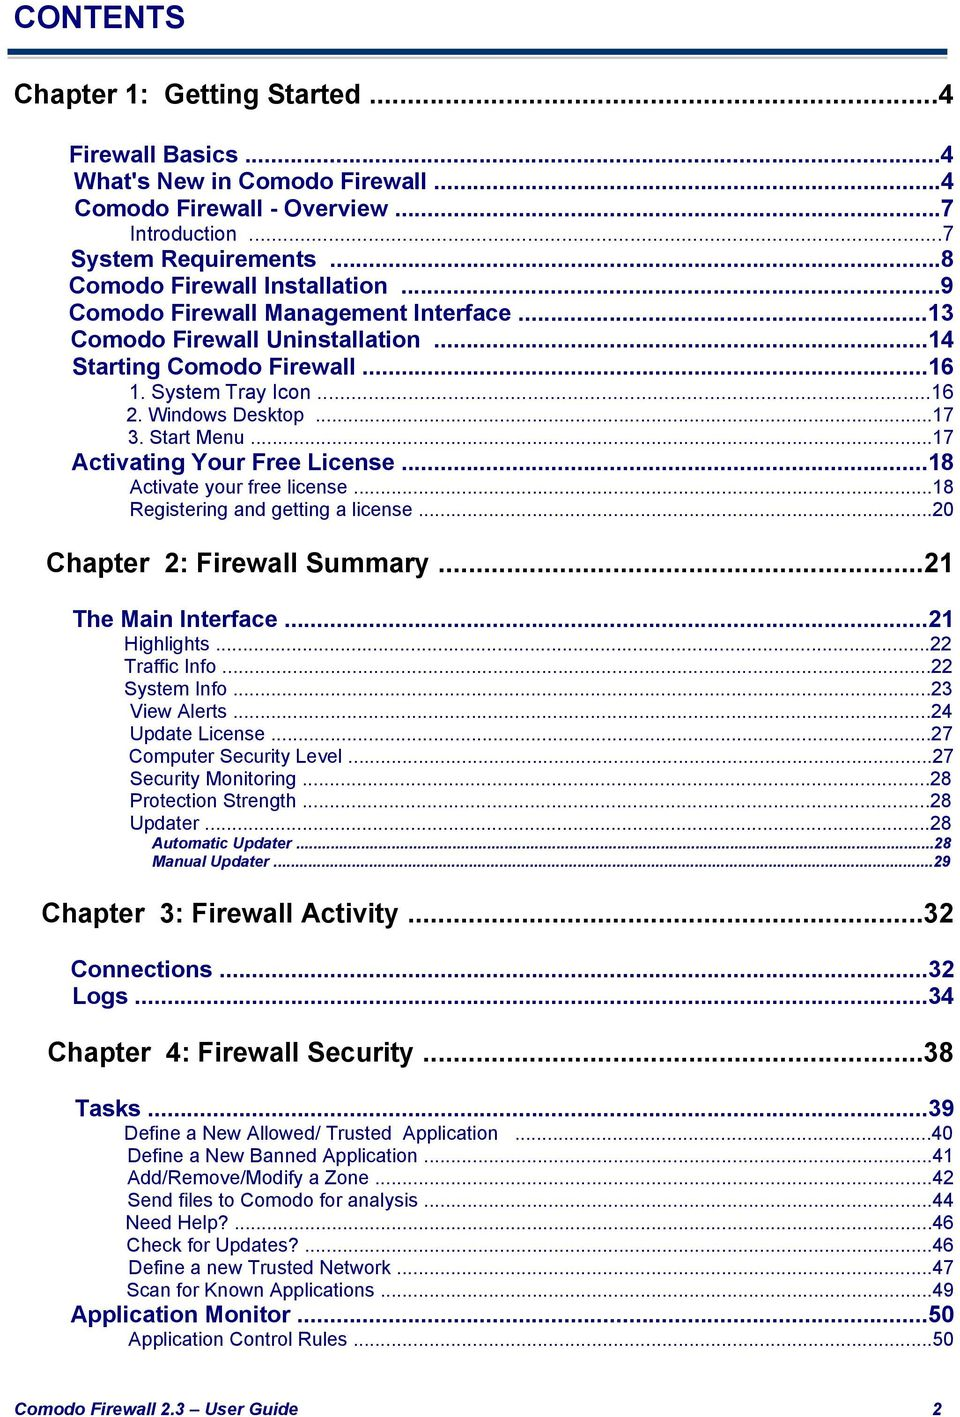 ..20 Chapter 2: Firewall Summary...21 The Main Interface...21 Highlights...22 Traffic Info...22 System Info...23 View Alerts...24 Update License...27 Computer Security Level...27 Security Monitoring.